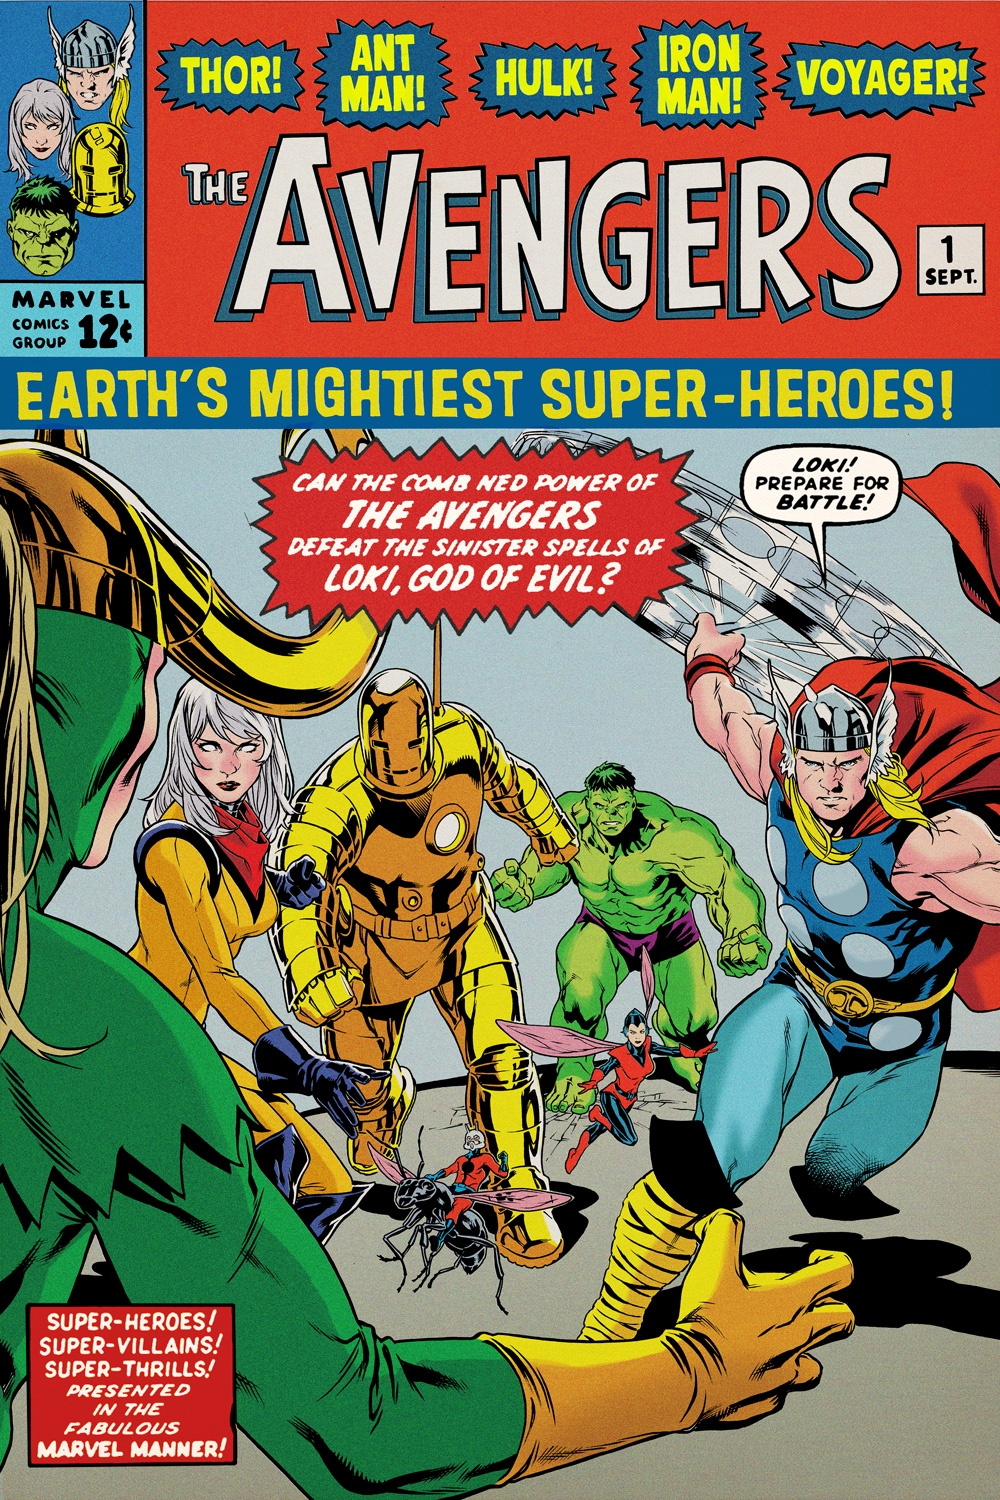 The Avengers: AVENGERS #675 Launch Parties Herald The Arrival Of